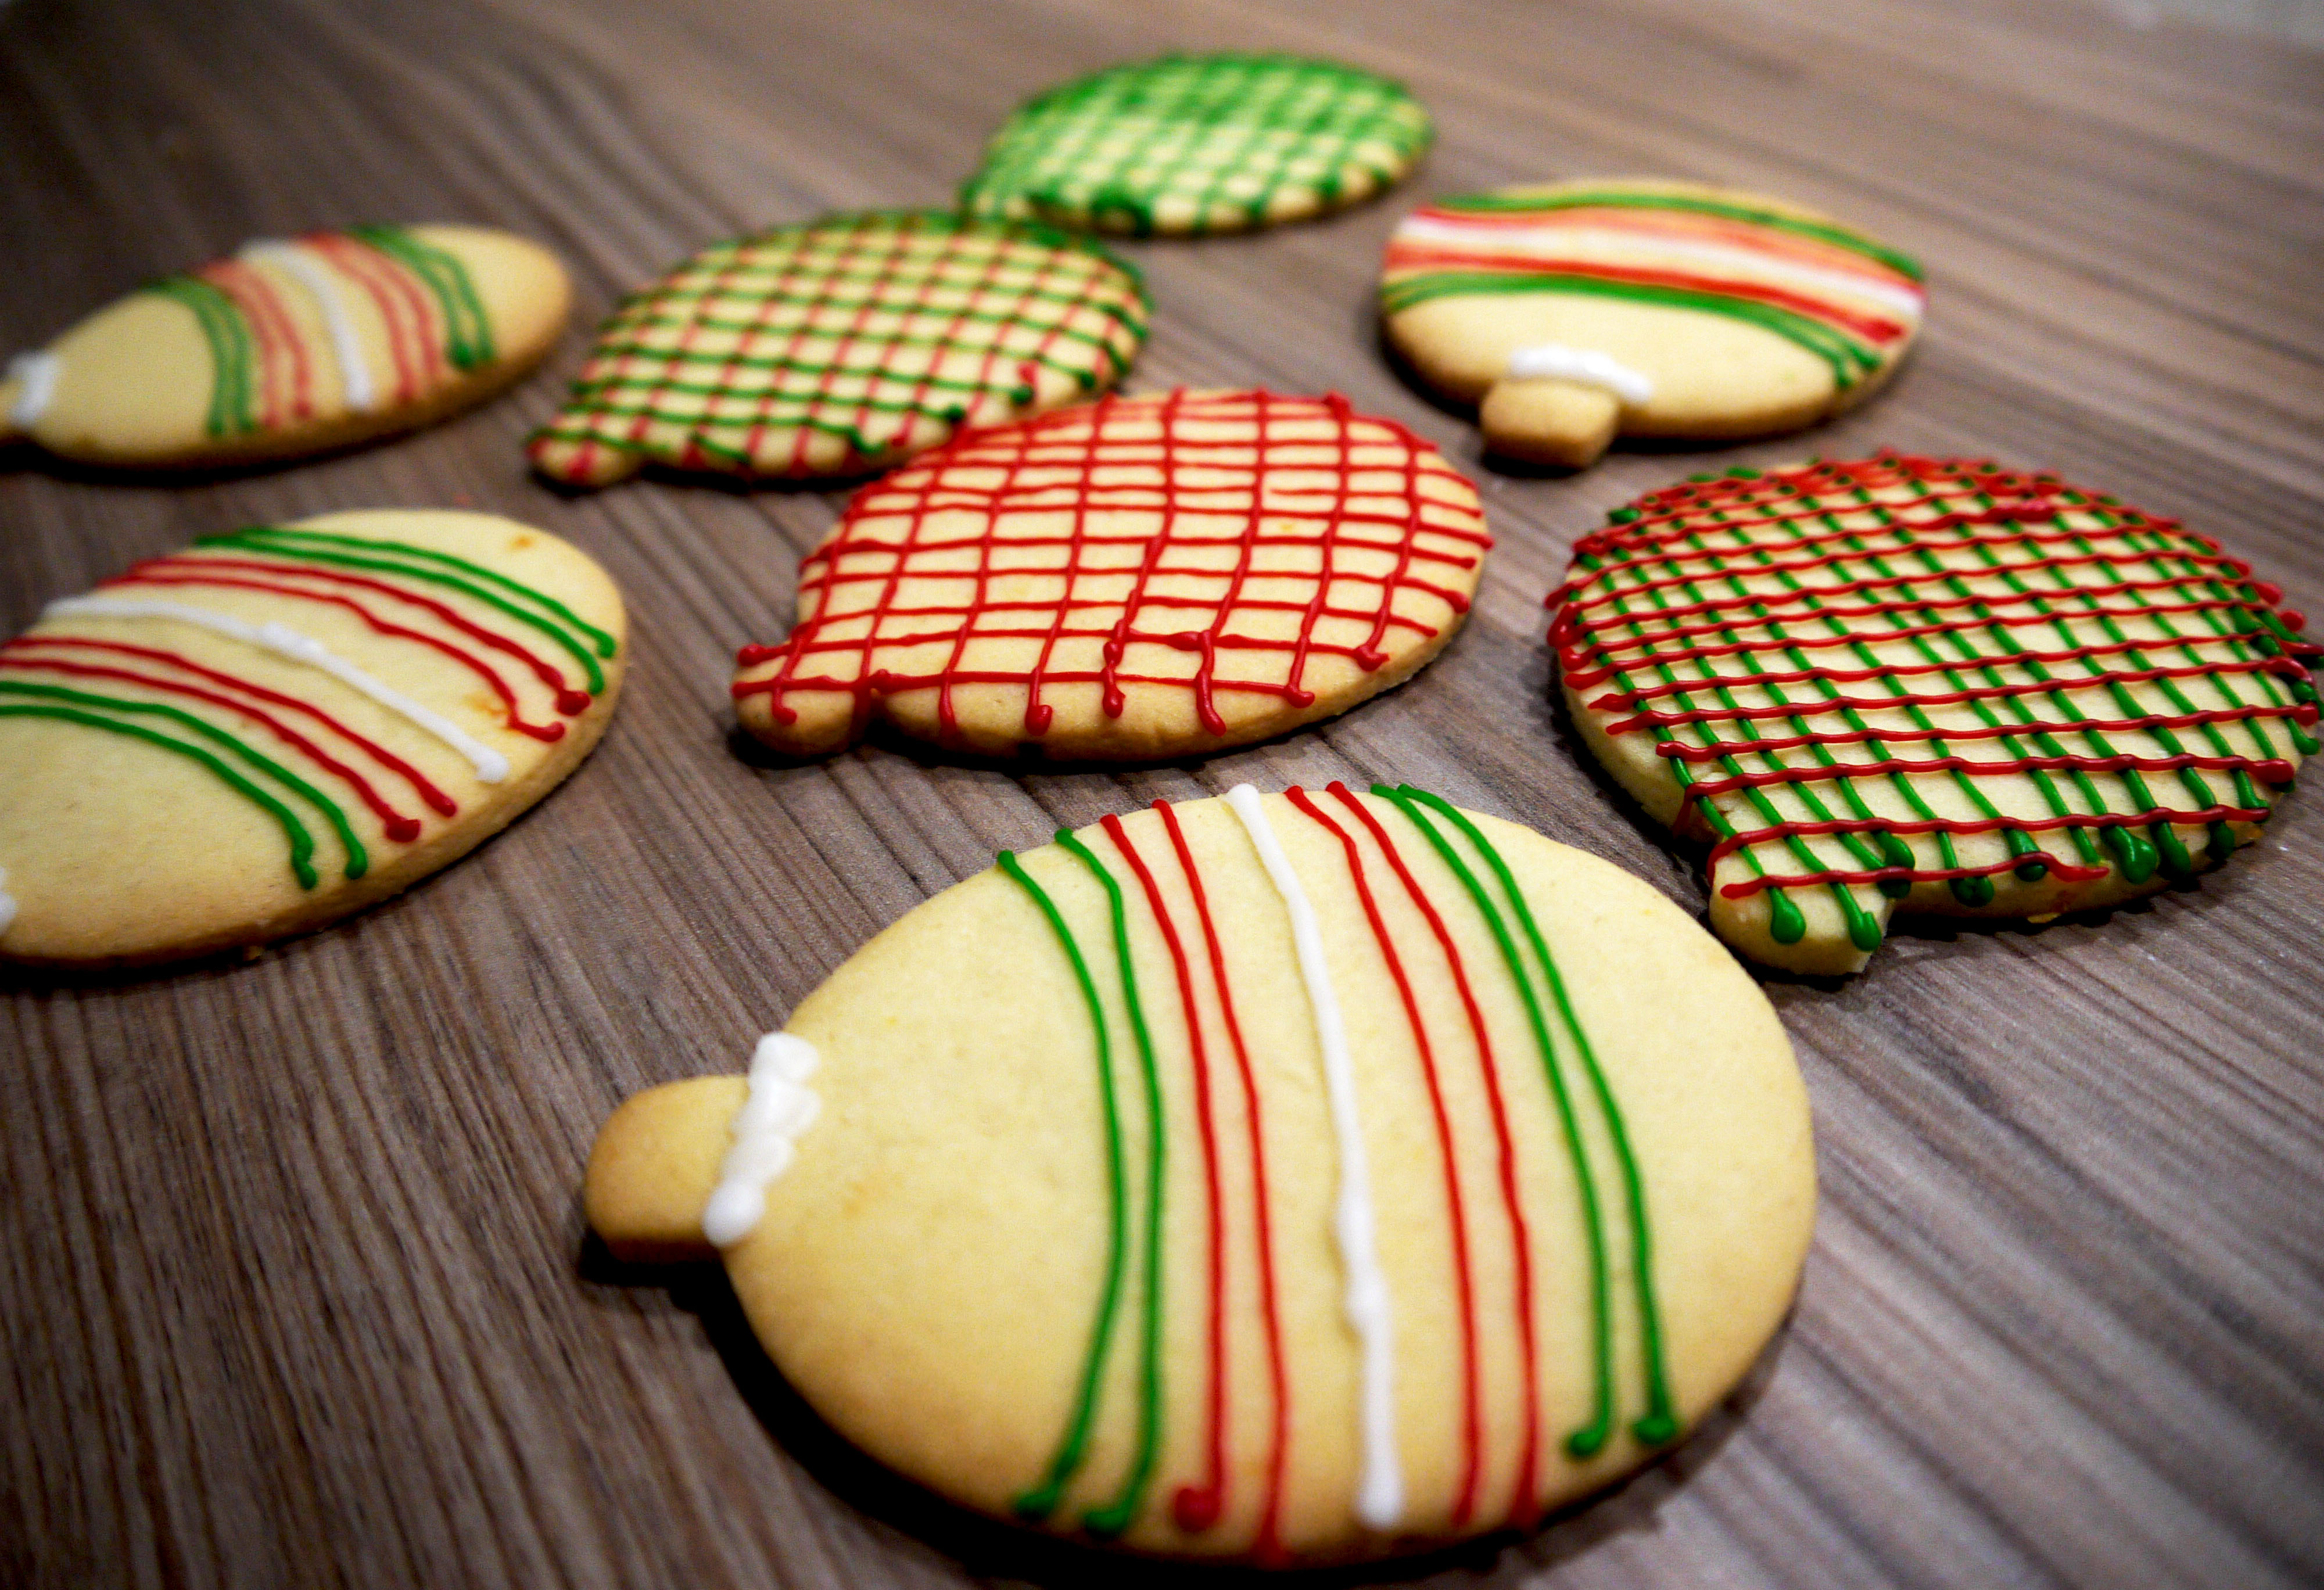 Biscuits decorated as Christmas baubles.